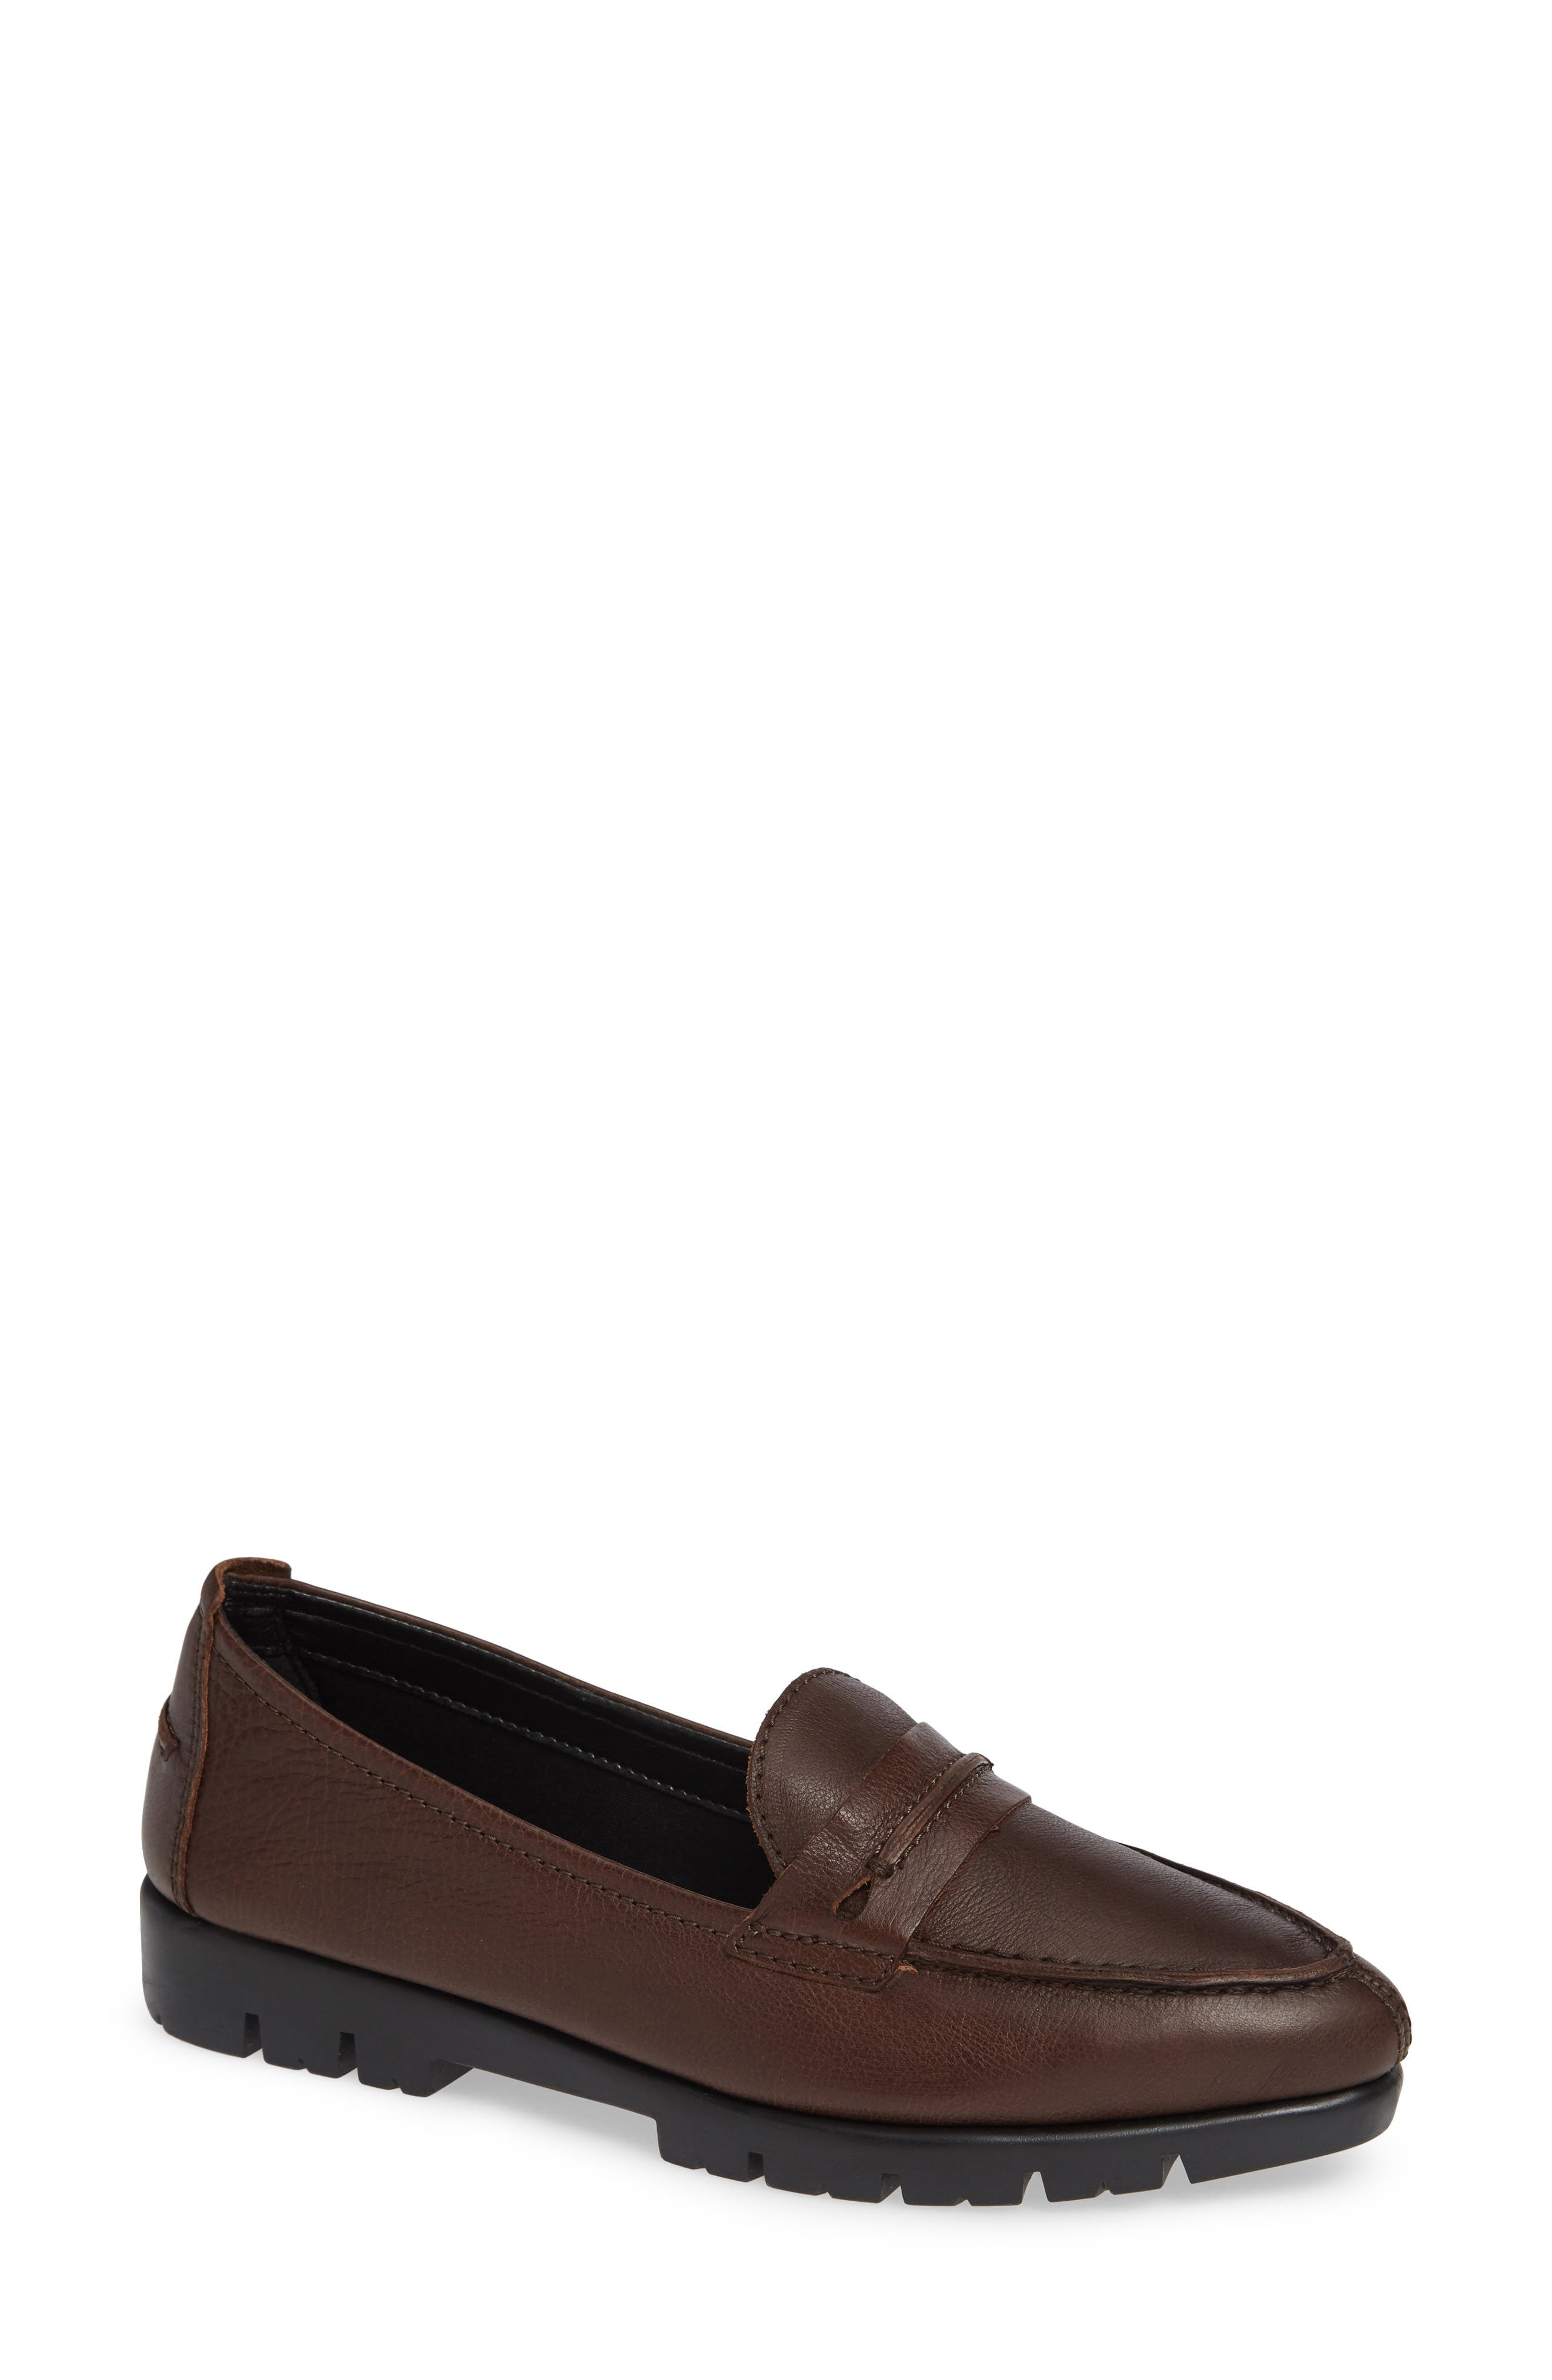 The Flexx Moc A Go Loafer, Brown